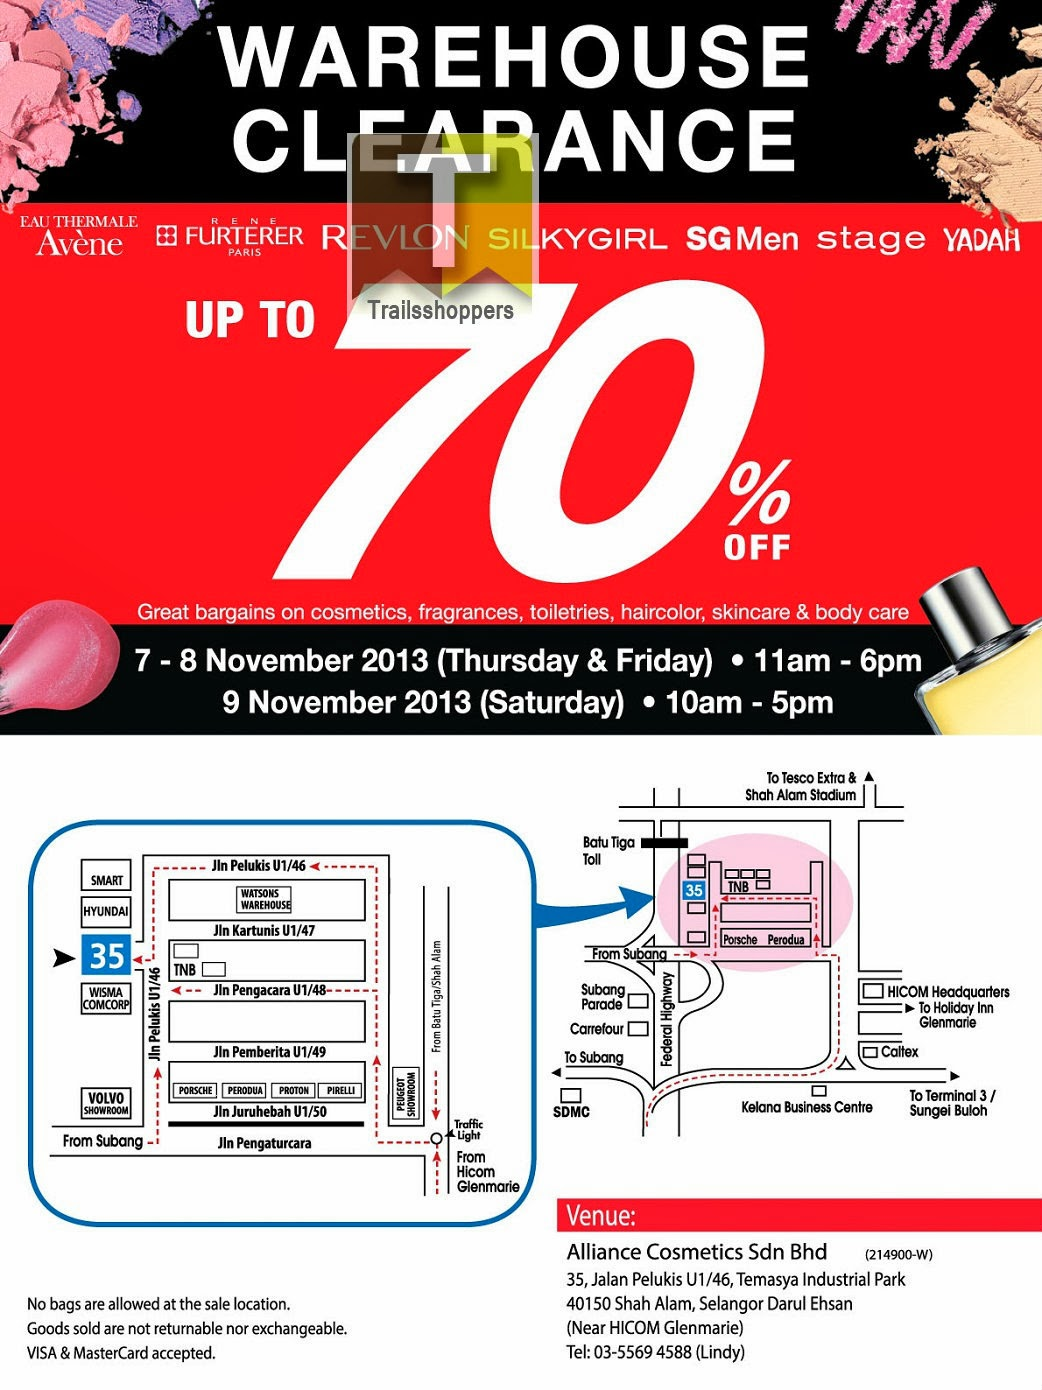 Alliance Cosmetics Warehouse Clearance 2013